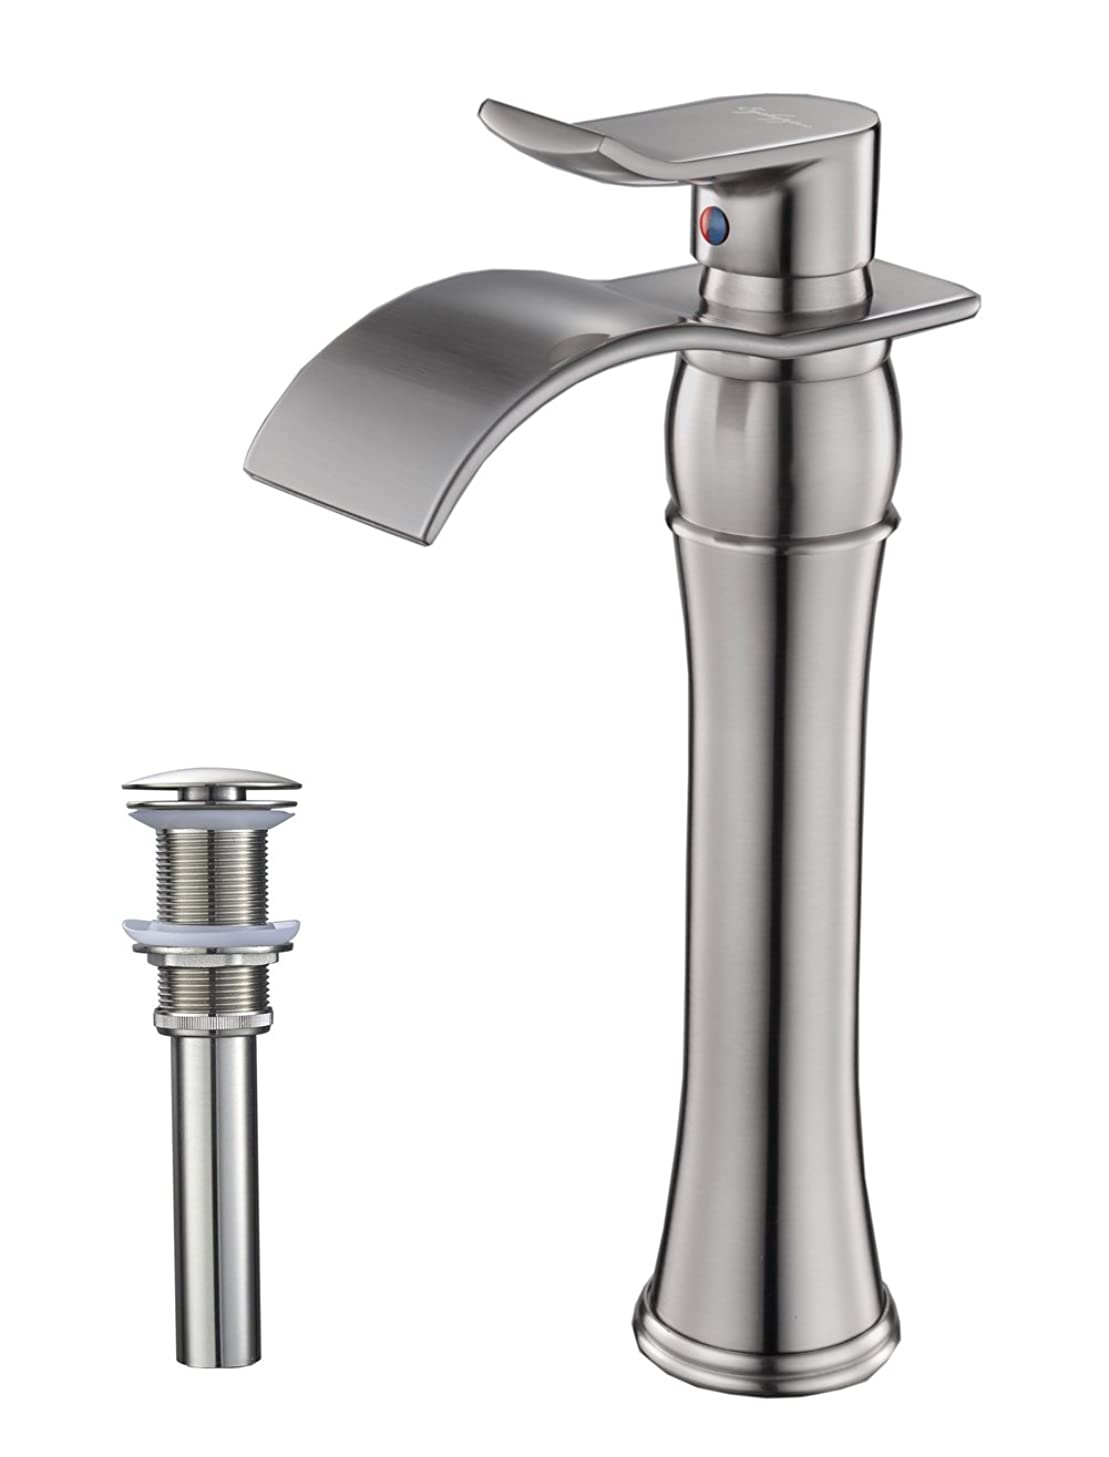 BWE Waterfall Spout Single Handle Commercial Bathroom Sink Vessel Faucet Mixer Tap Lavatory Faucets Tall Body Brushed Nickel